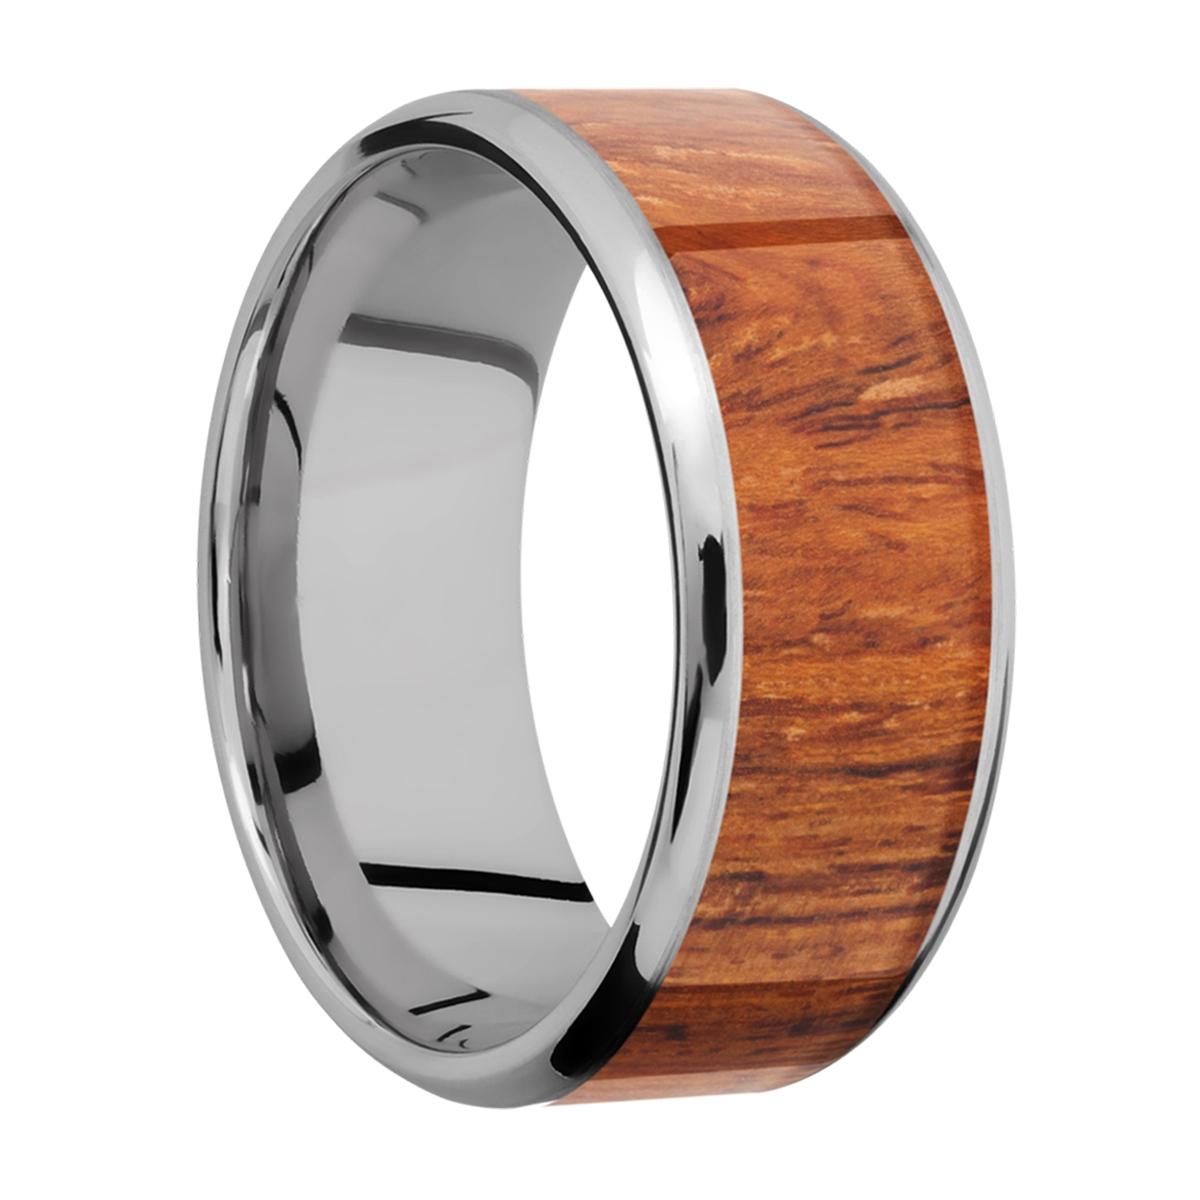 Lashbrook 9B17(NS)/HARDWOOD Titanium Wedding Ring or Band Alternative View 1